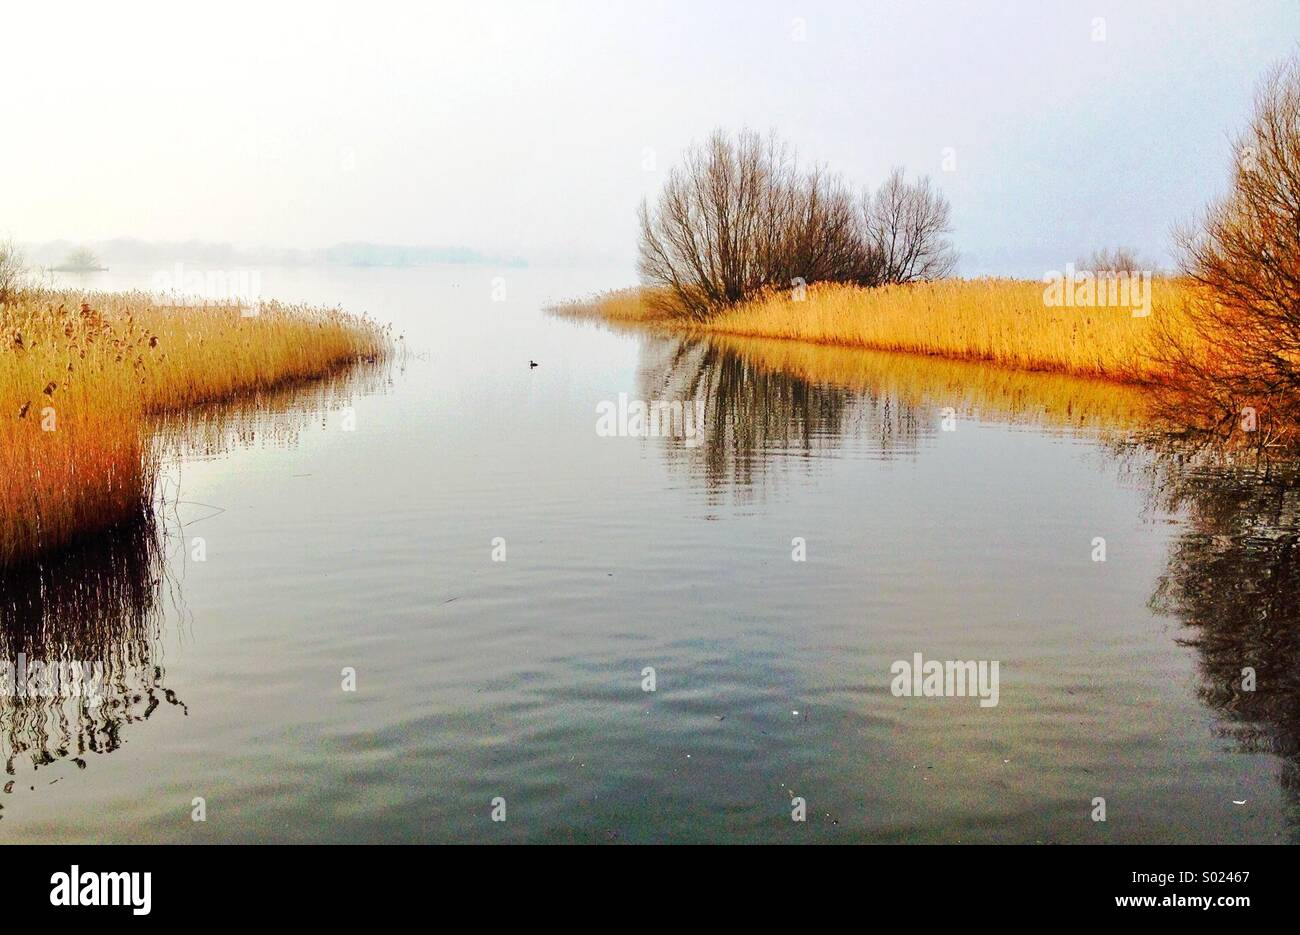 A picturesque quiet scene at the southern end of Chew Valley Lake, showing reflections in calm water of shrubs and - Stock Image